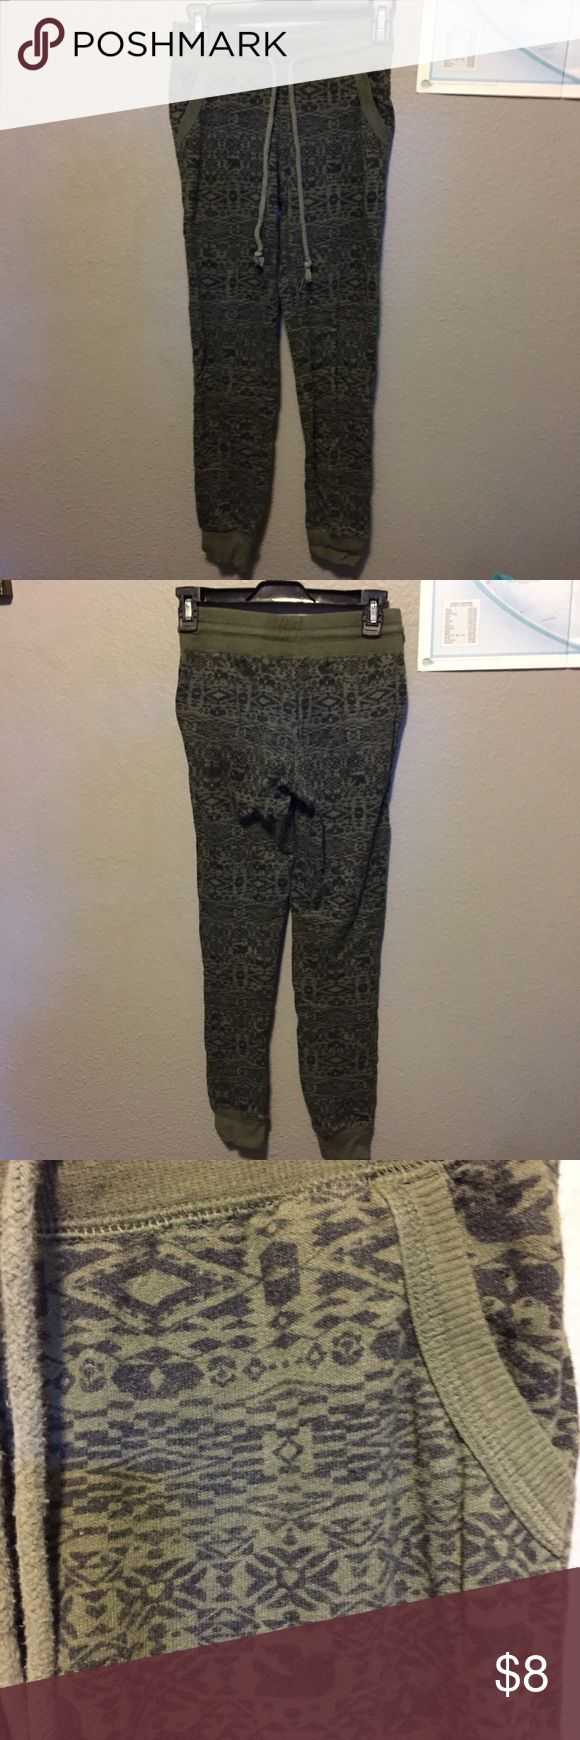 """Green joggers w/ Aztec print Super cute green joggers with a black Aztec print all over. Two real pockets on the front and a draw string waist. In seam is about 29"""" and the waist is about 26"""", but has stretch in it. Great used condition, unfortunately too small for me now! Merona Pants Track Pants & Joggers"""